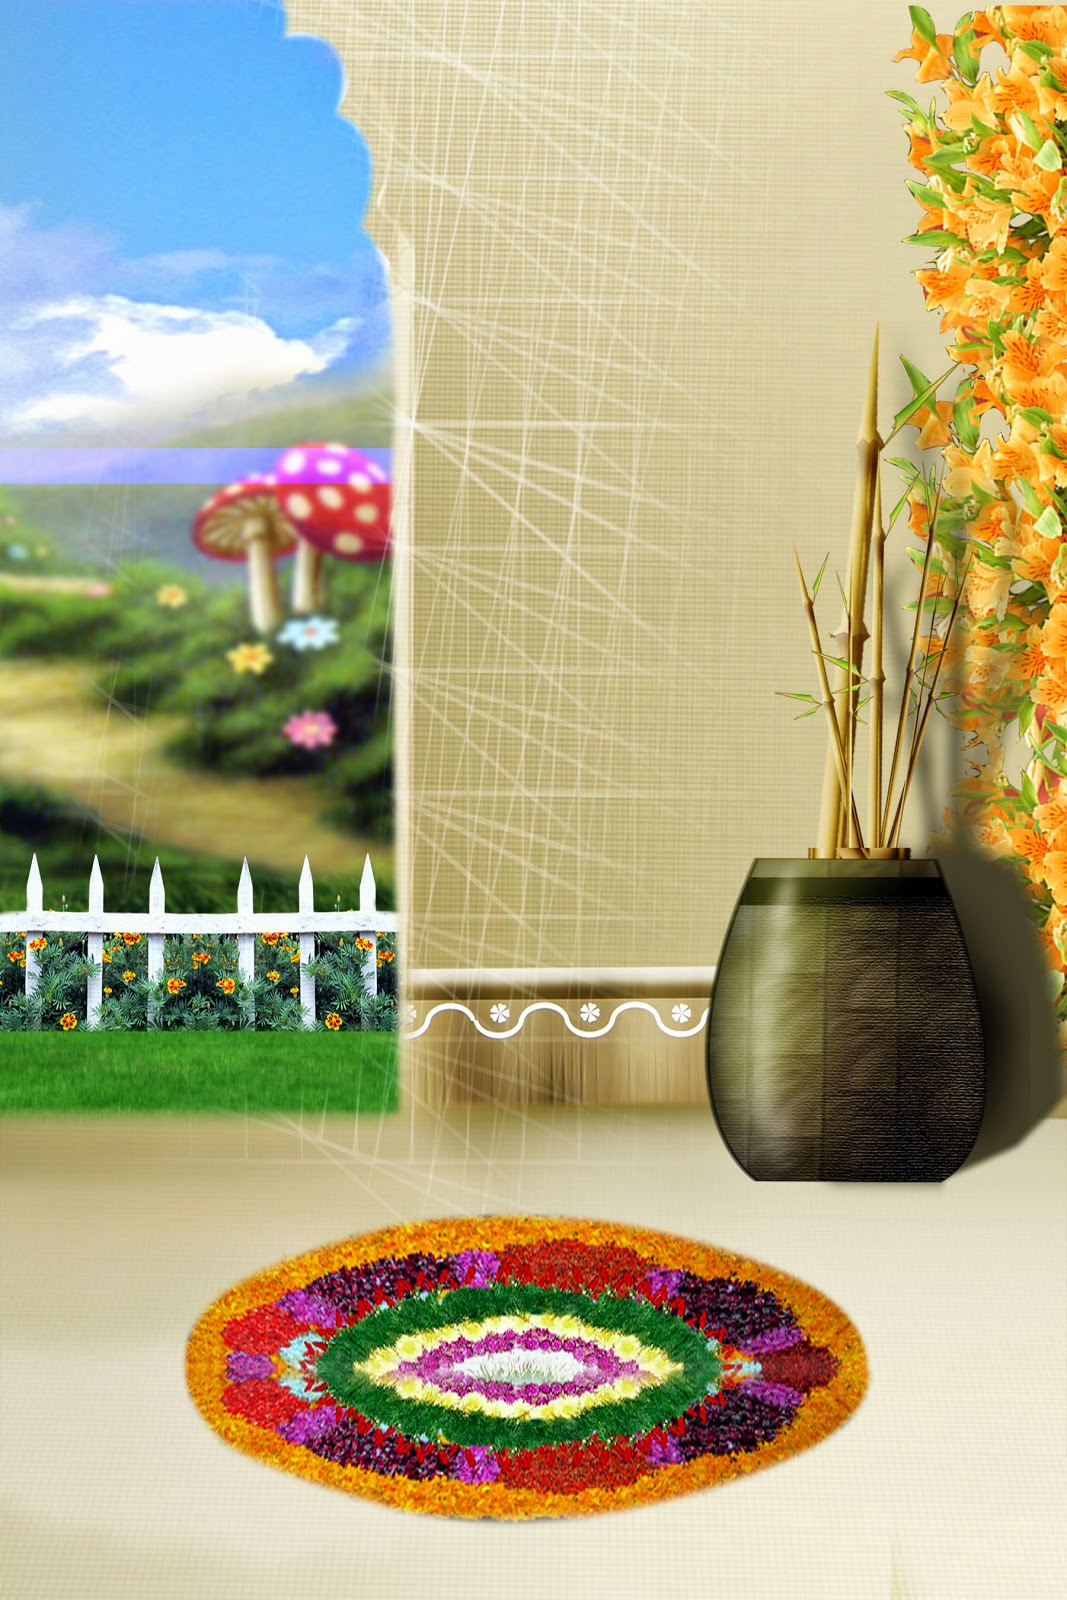 11 PSD Studio Backgrounds Images Background